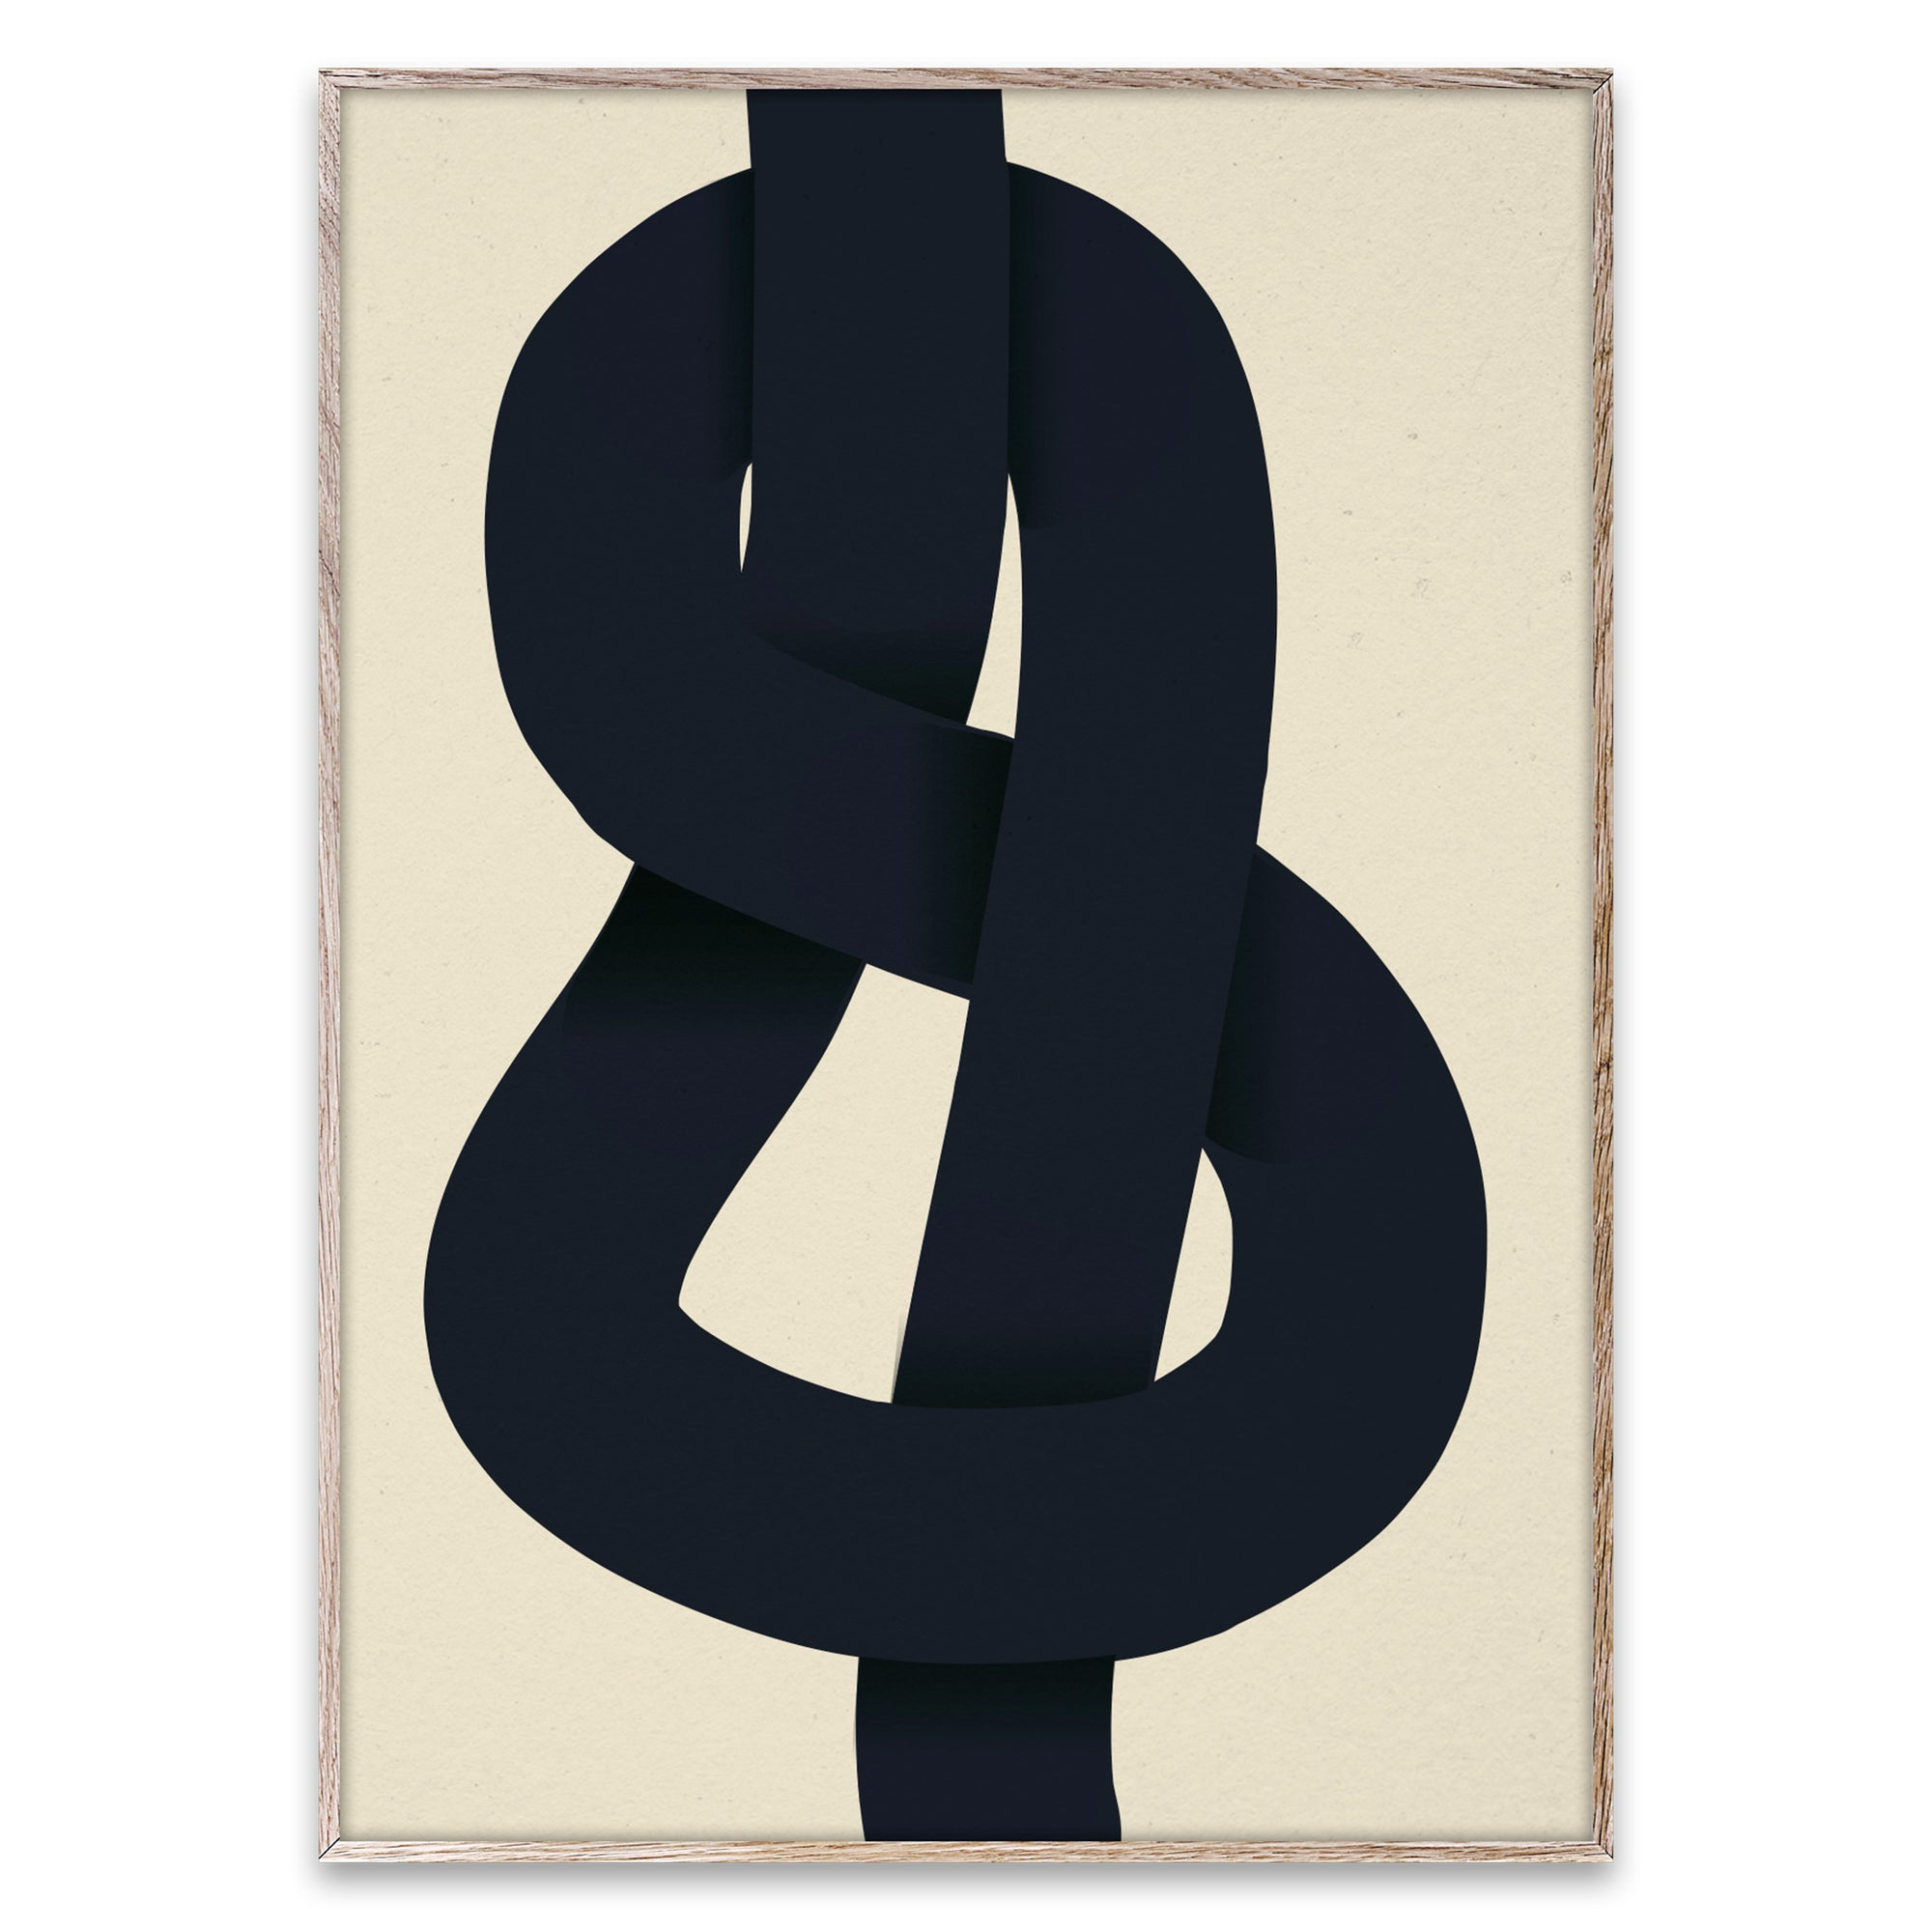 Paper Collective The Knot Poster - Scandi Minimal